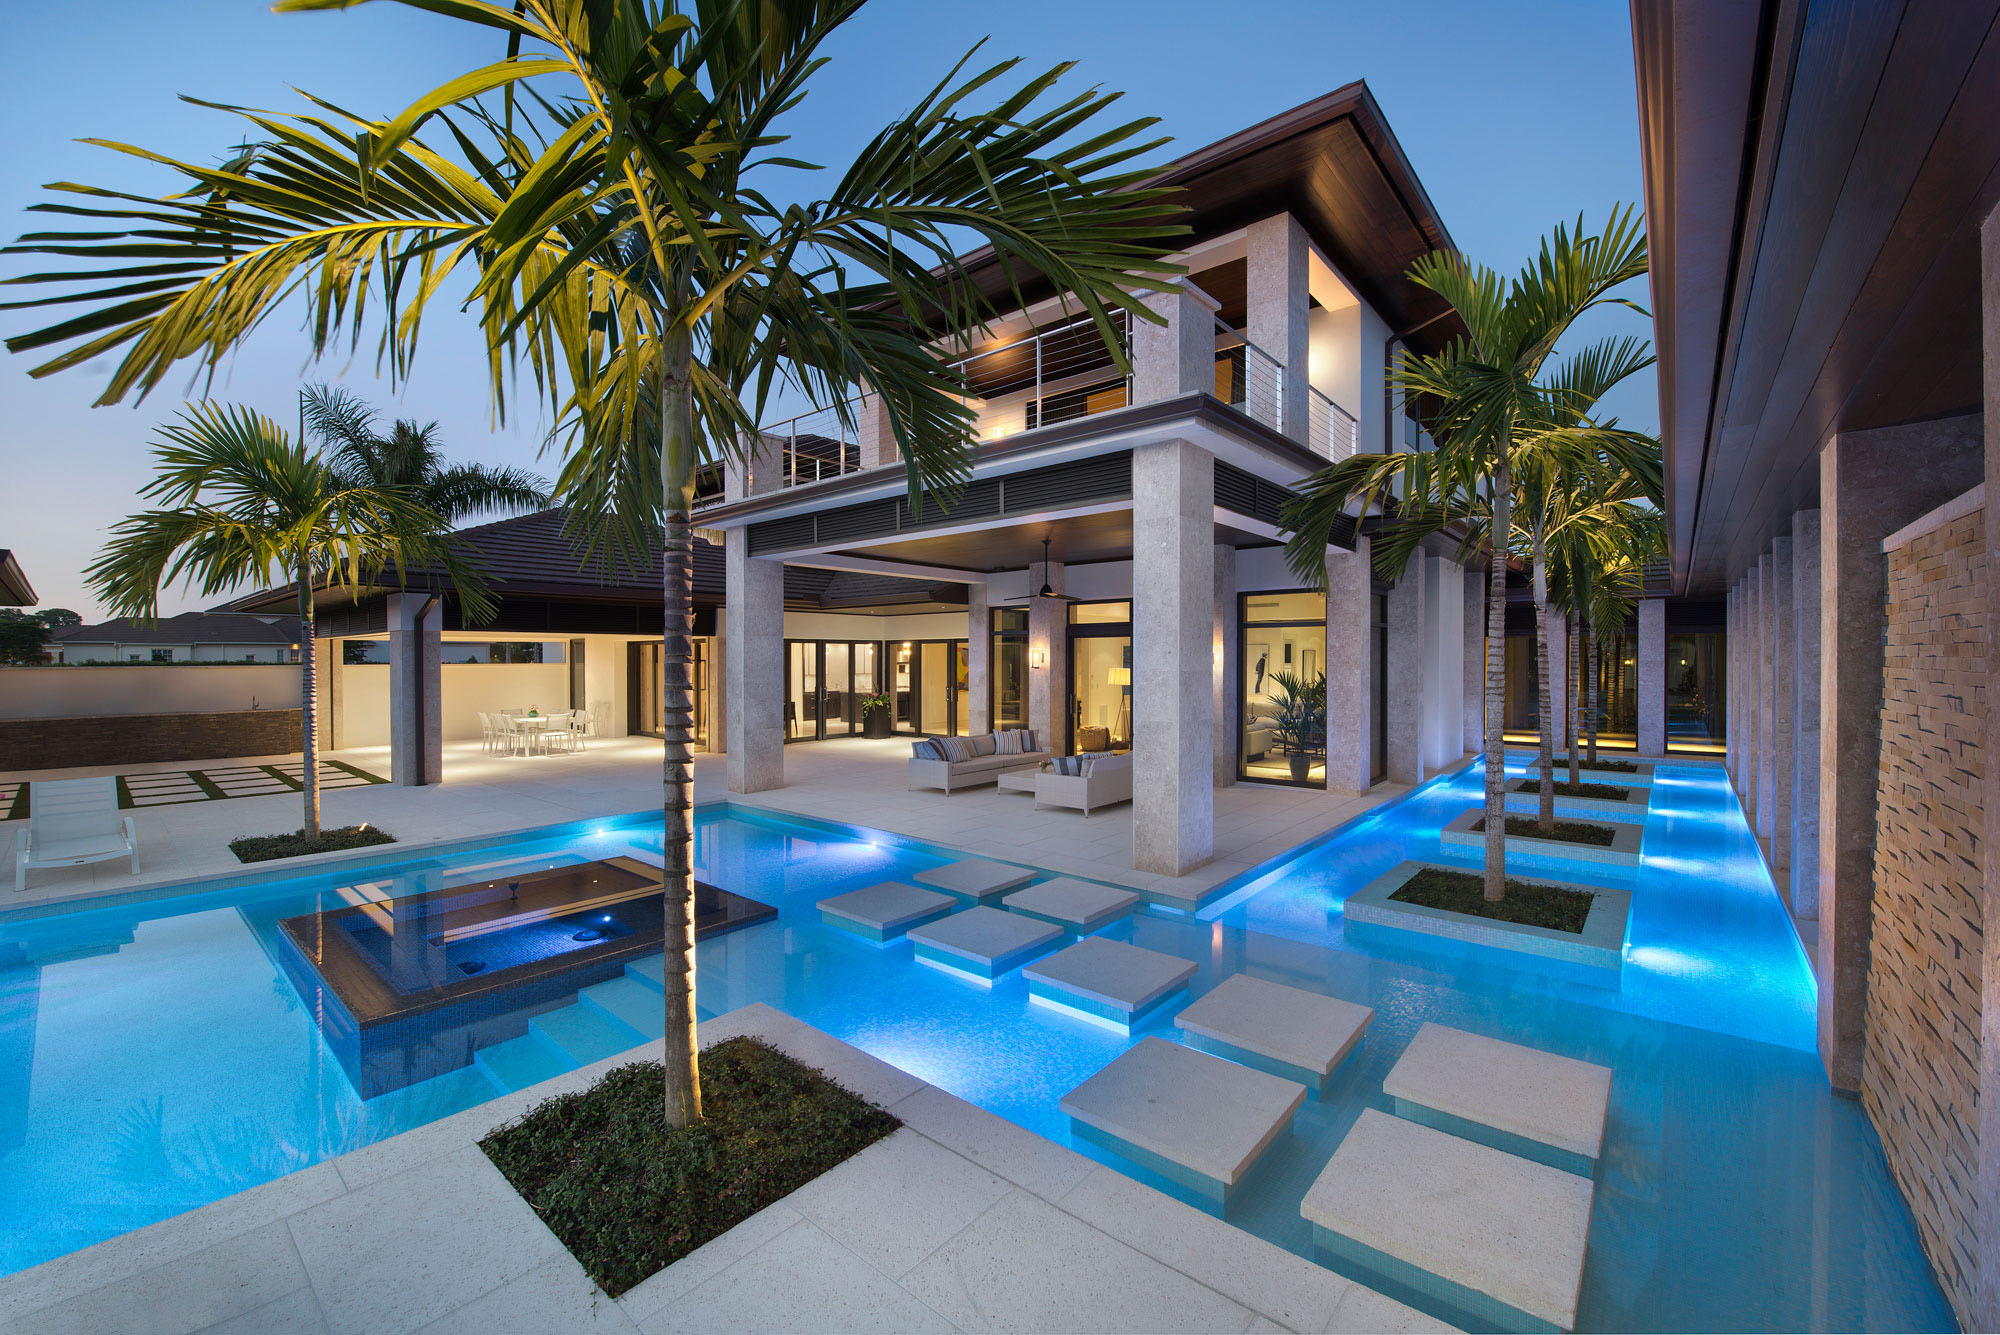 Modern Houses With Pool This Stunning Contemporary Luxury Home In Naples Florida Was Designed